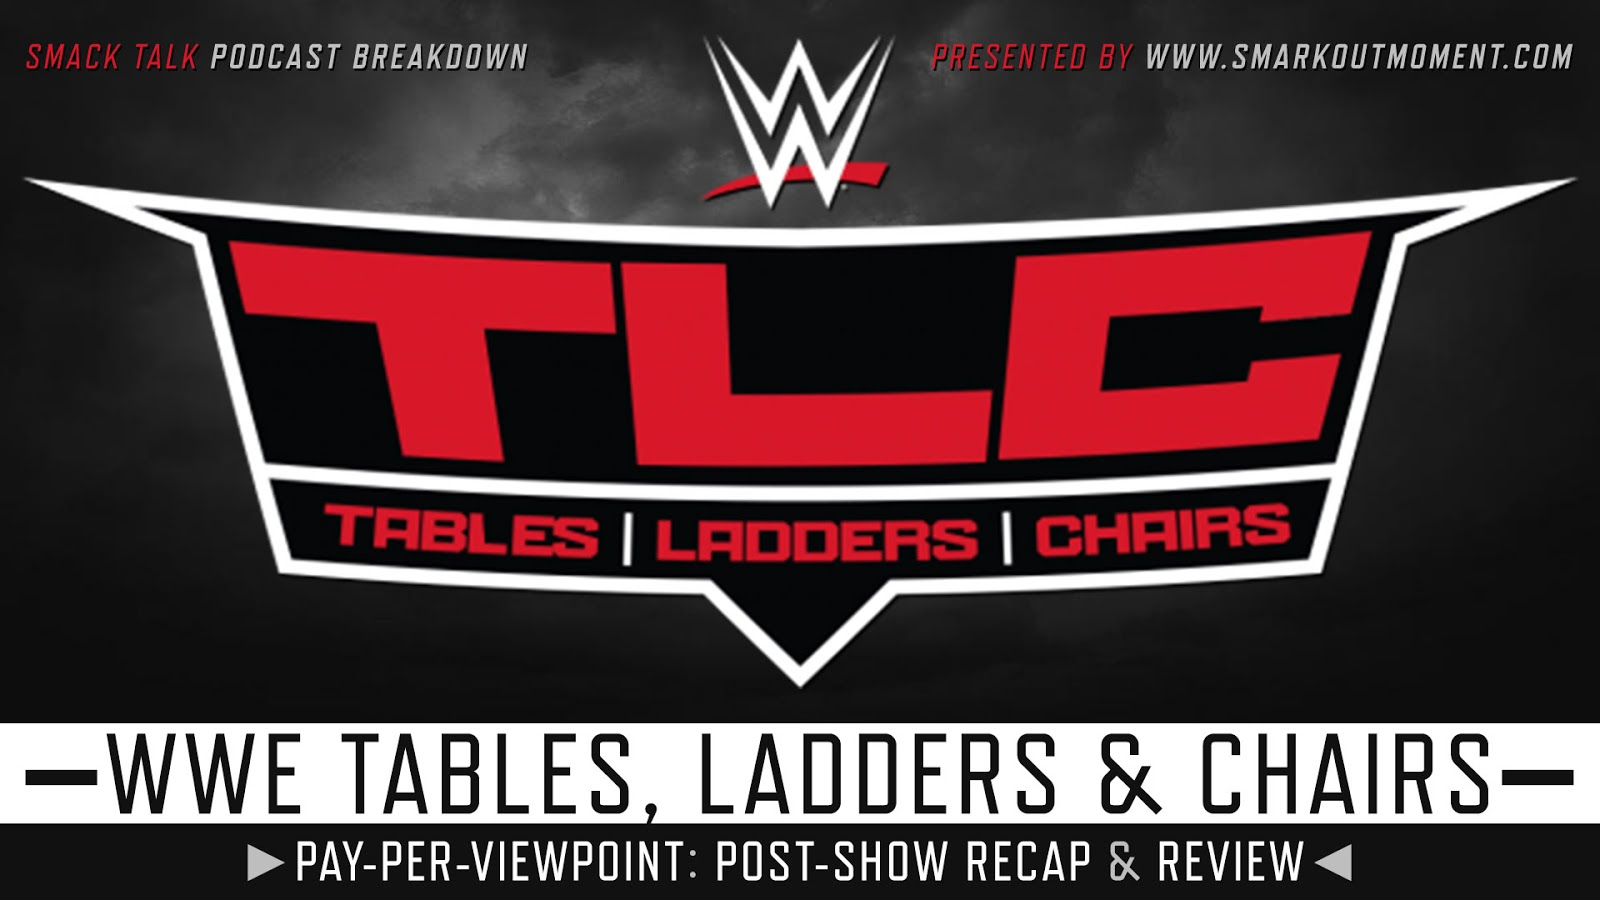 WWE TLC 2019 Recap and Review Podcast